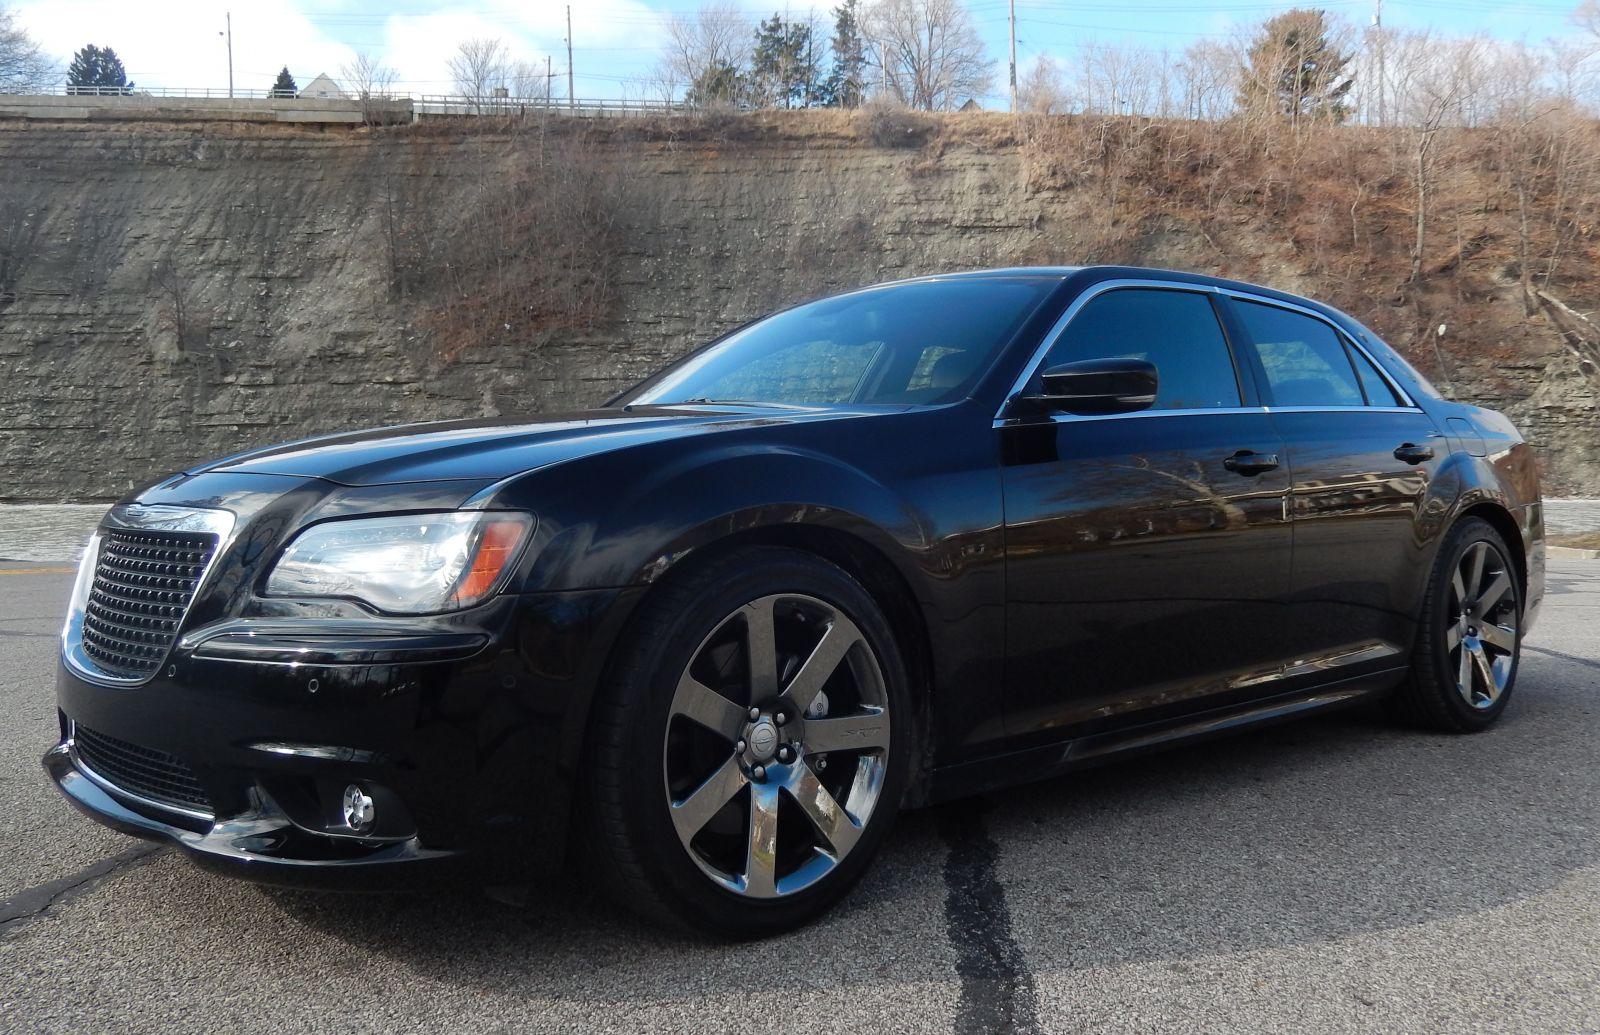 chrysler 2013 300 srt 8 hemi 15k rebuilt cleveland power performance. Black Bedroom Furniture Sets. Home Design Ideas